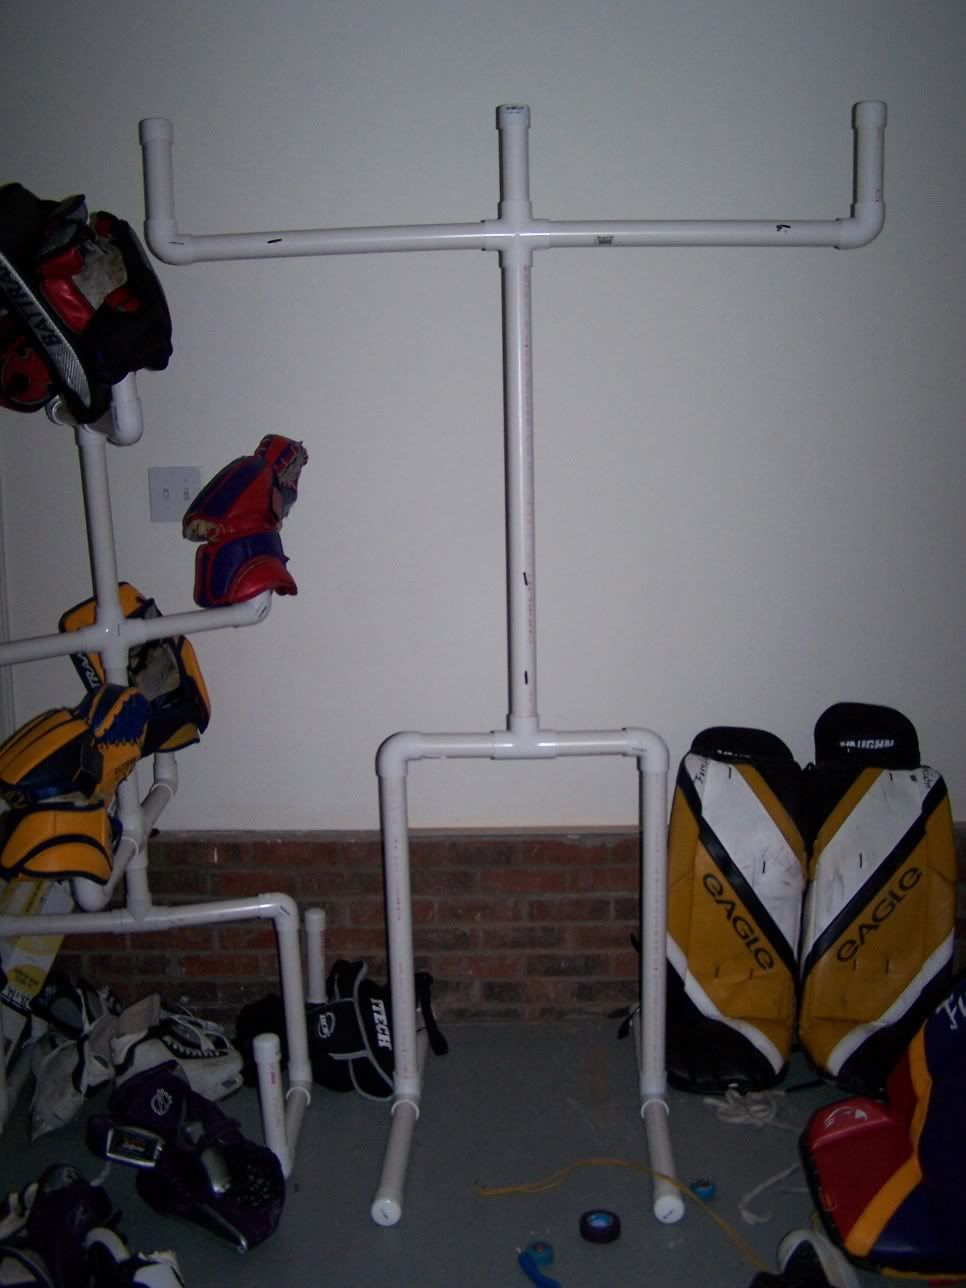 Gear Drying Rack For Bill S Gear Wall Mounted Drying Rack Hockey Drying Rack Drying Rack